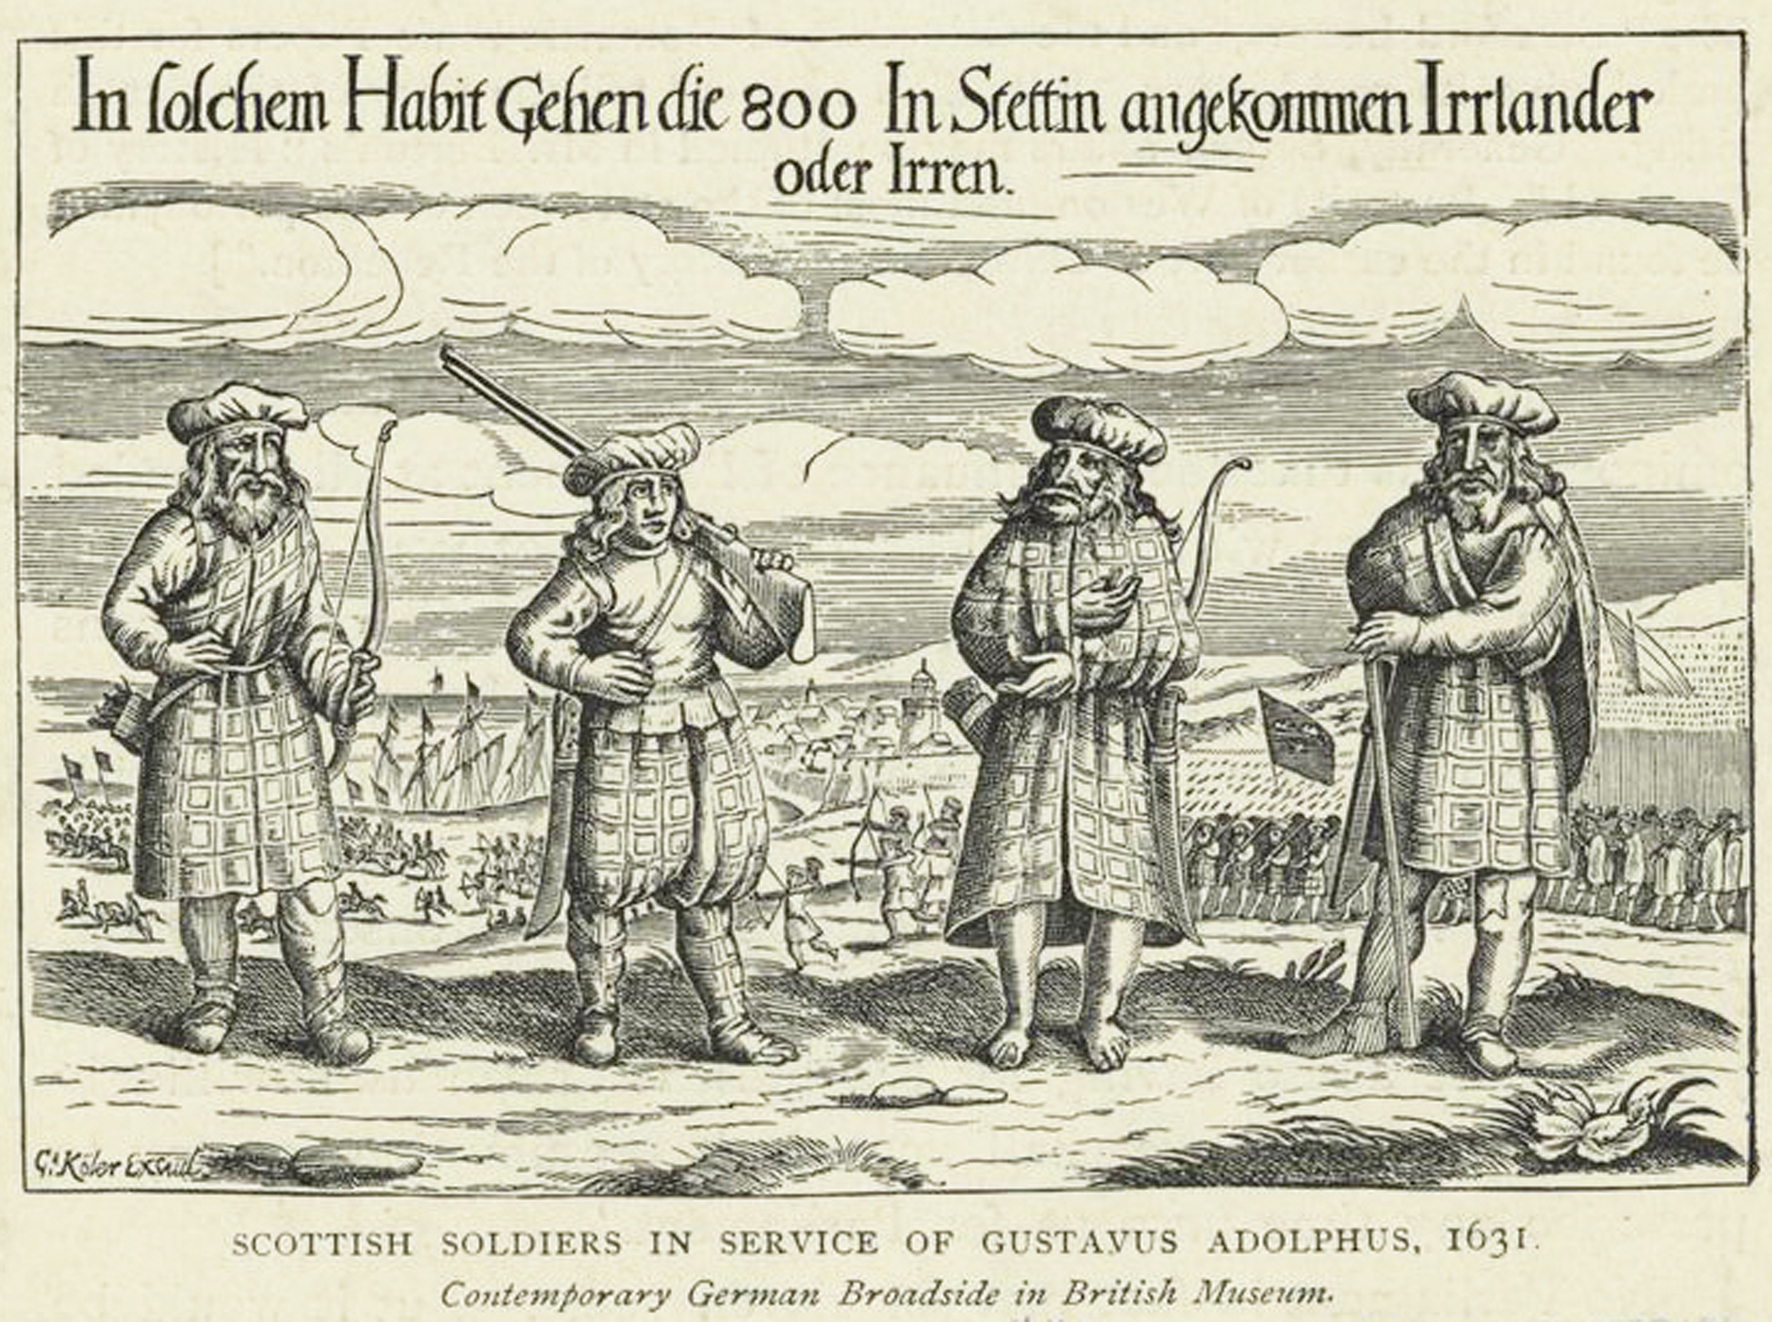 Print showing Scottish soldiers in the service of King Gustavus Adophus of Sweden in 1631